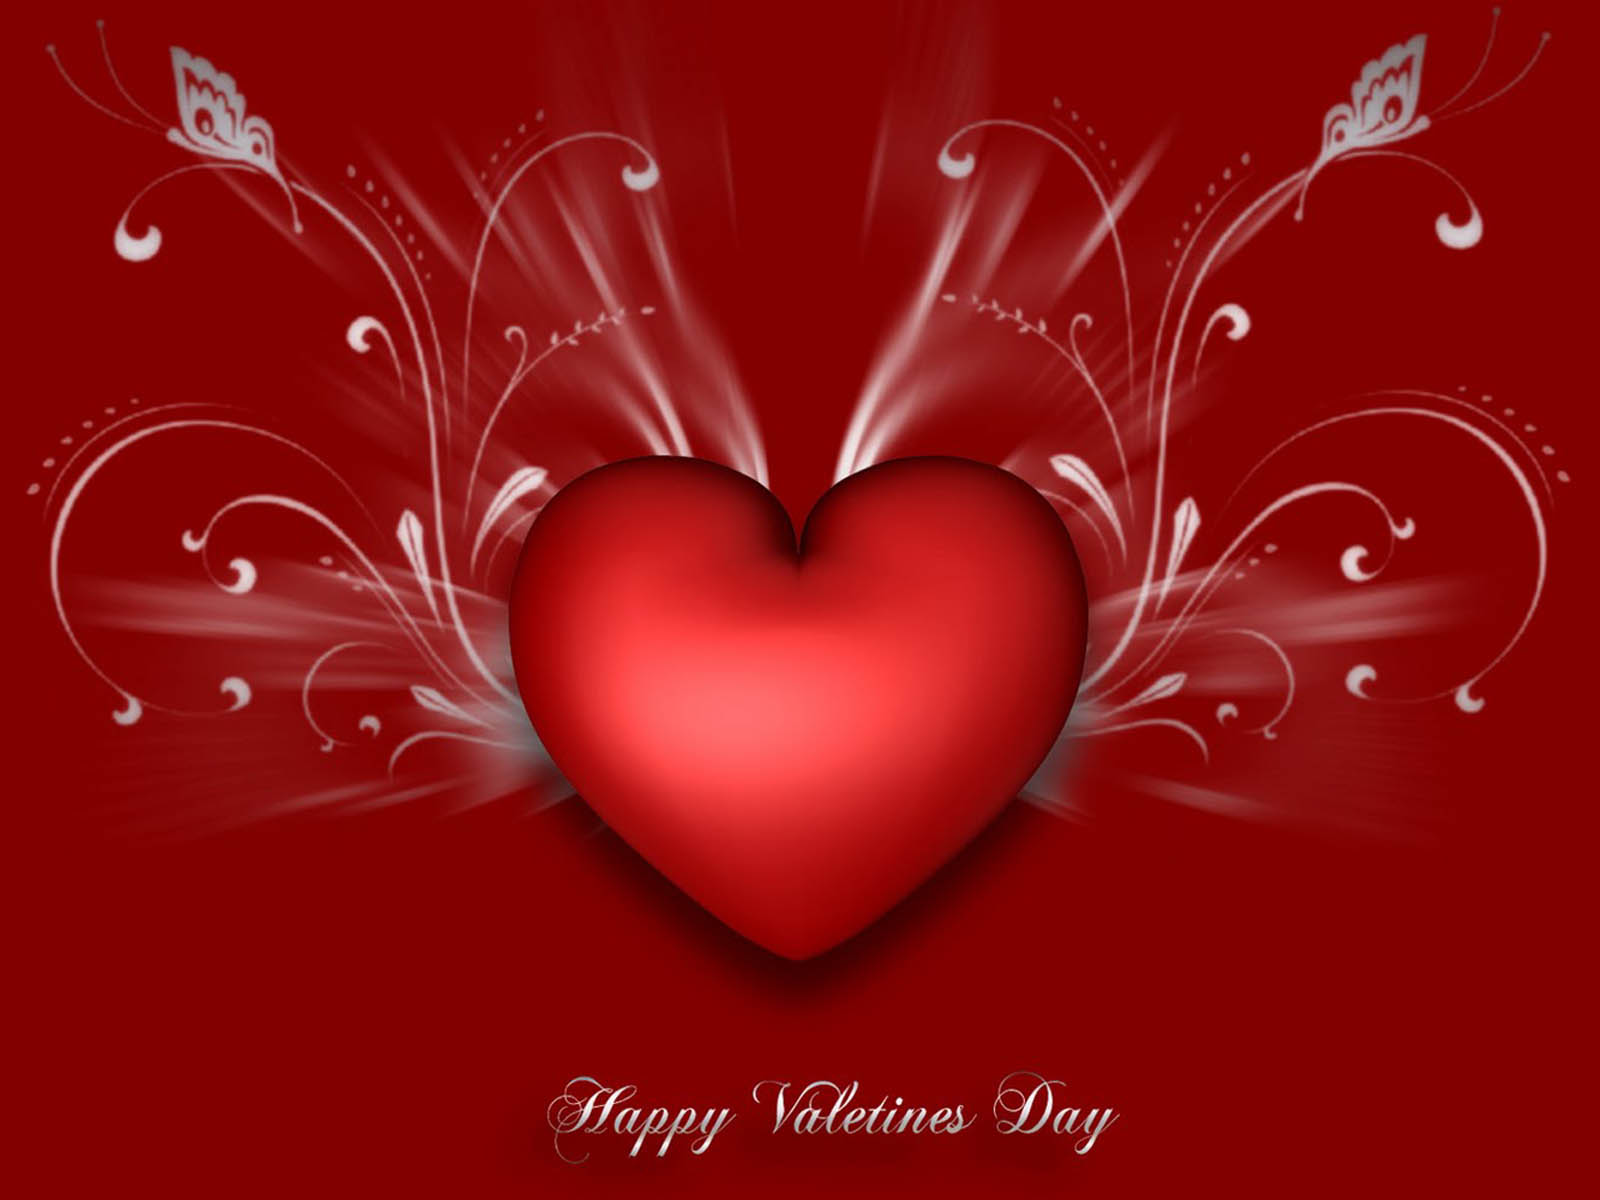 wallpapers Valentines Day Wallpapers 2013 1600x1200